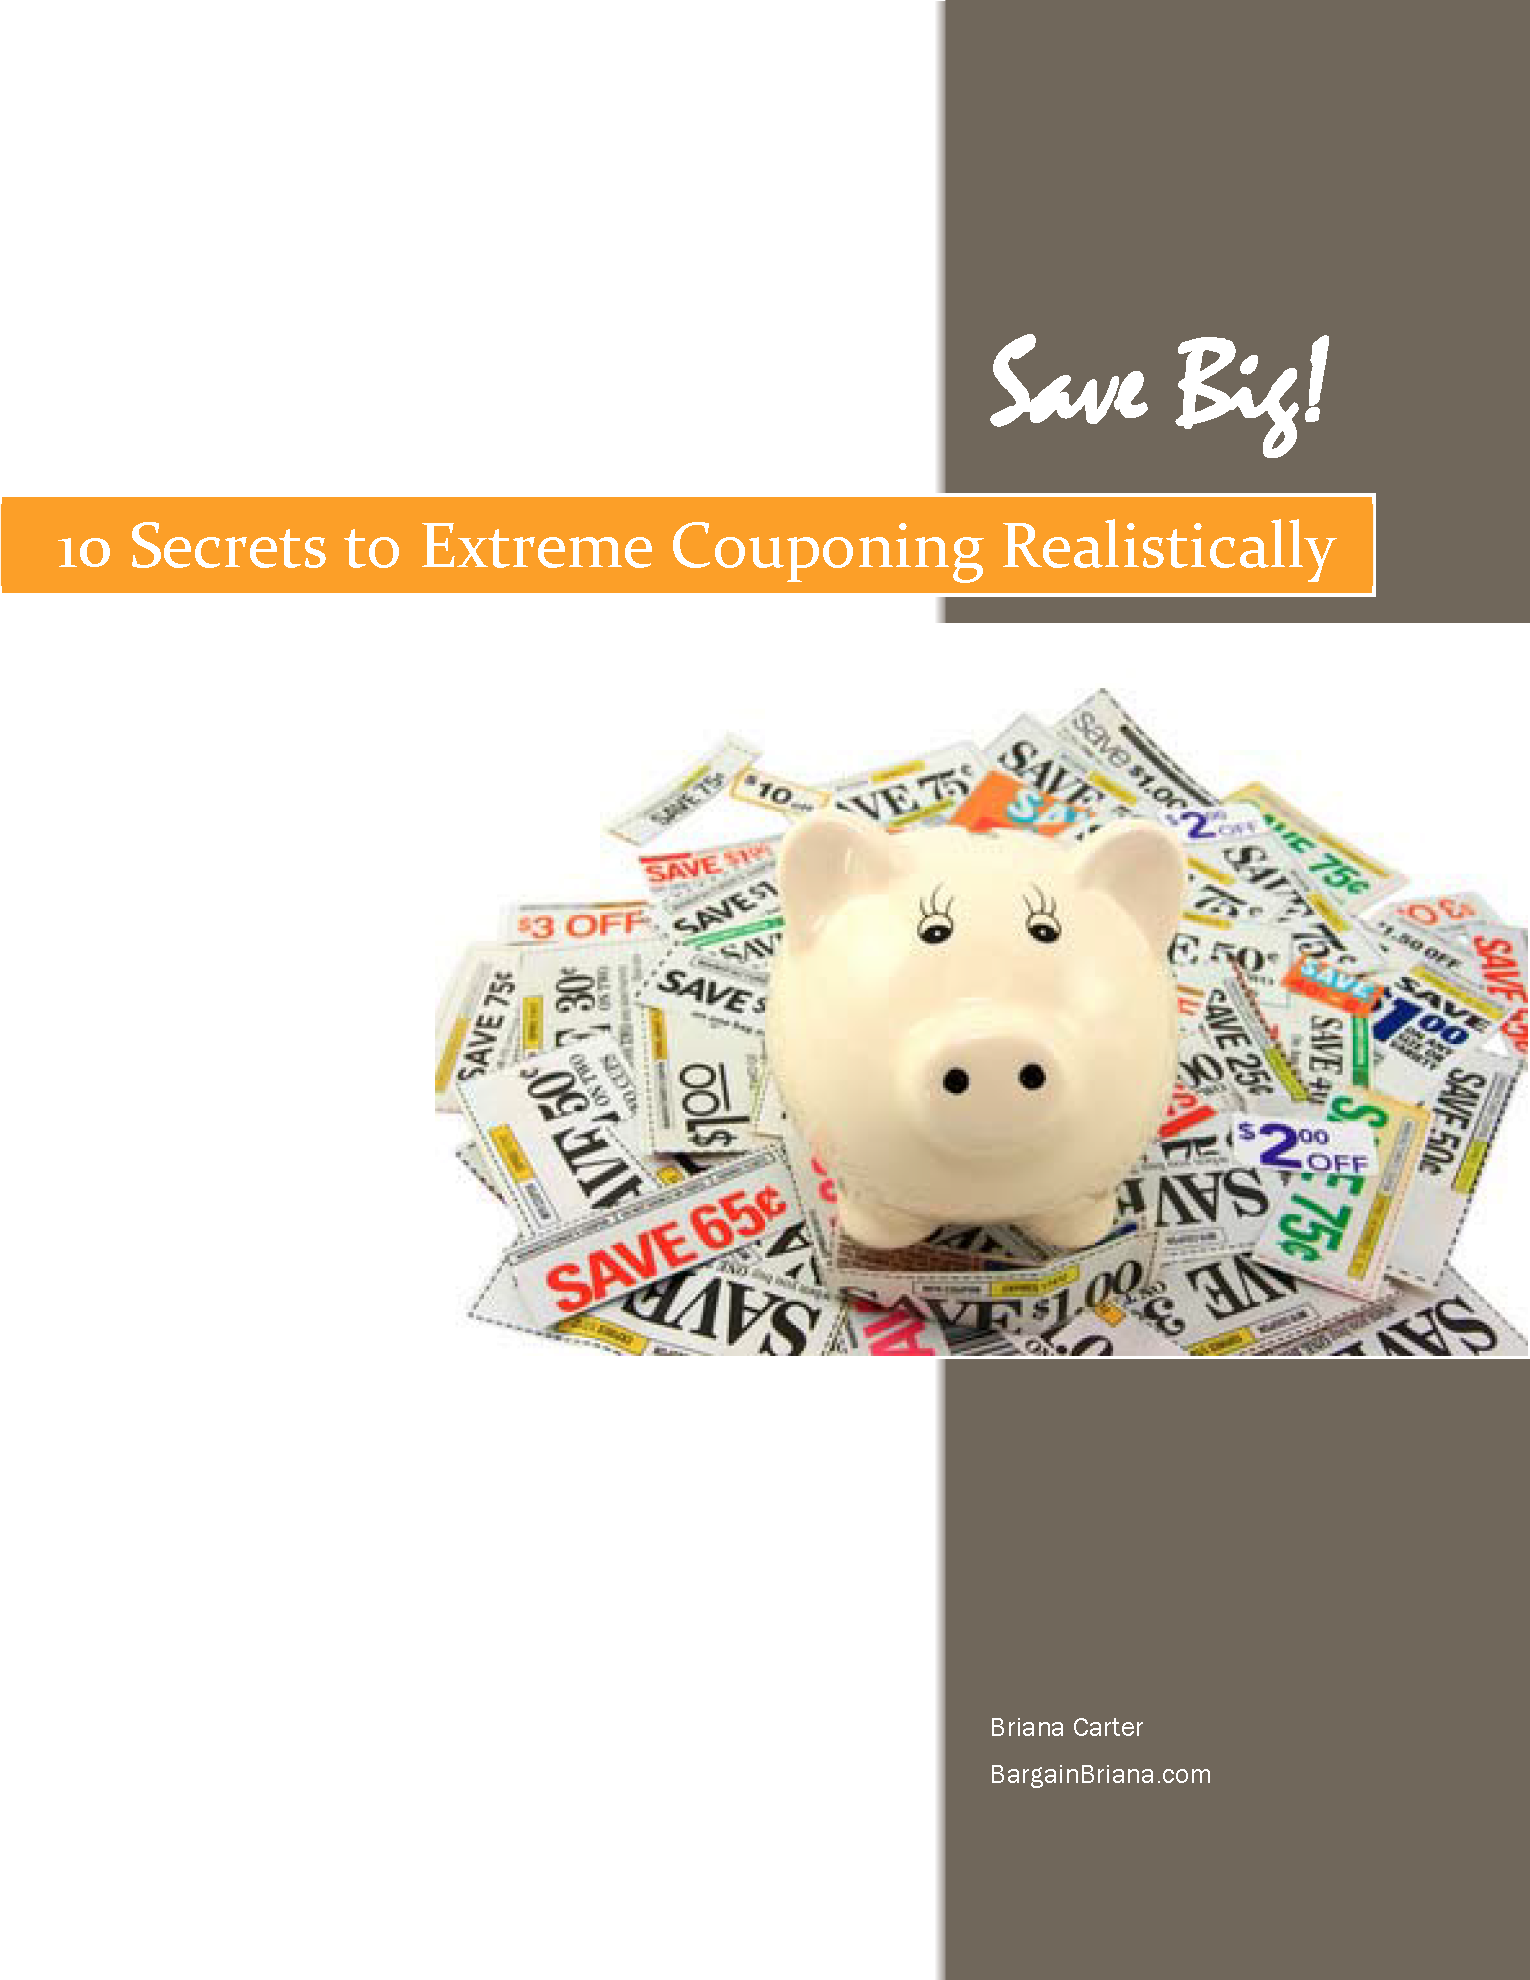 Free ebook 10 secrets to extreme couponing realistically free ebook 10 secrets to extreme couponing realistically bargainbriana fandeluxe Gallery